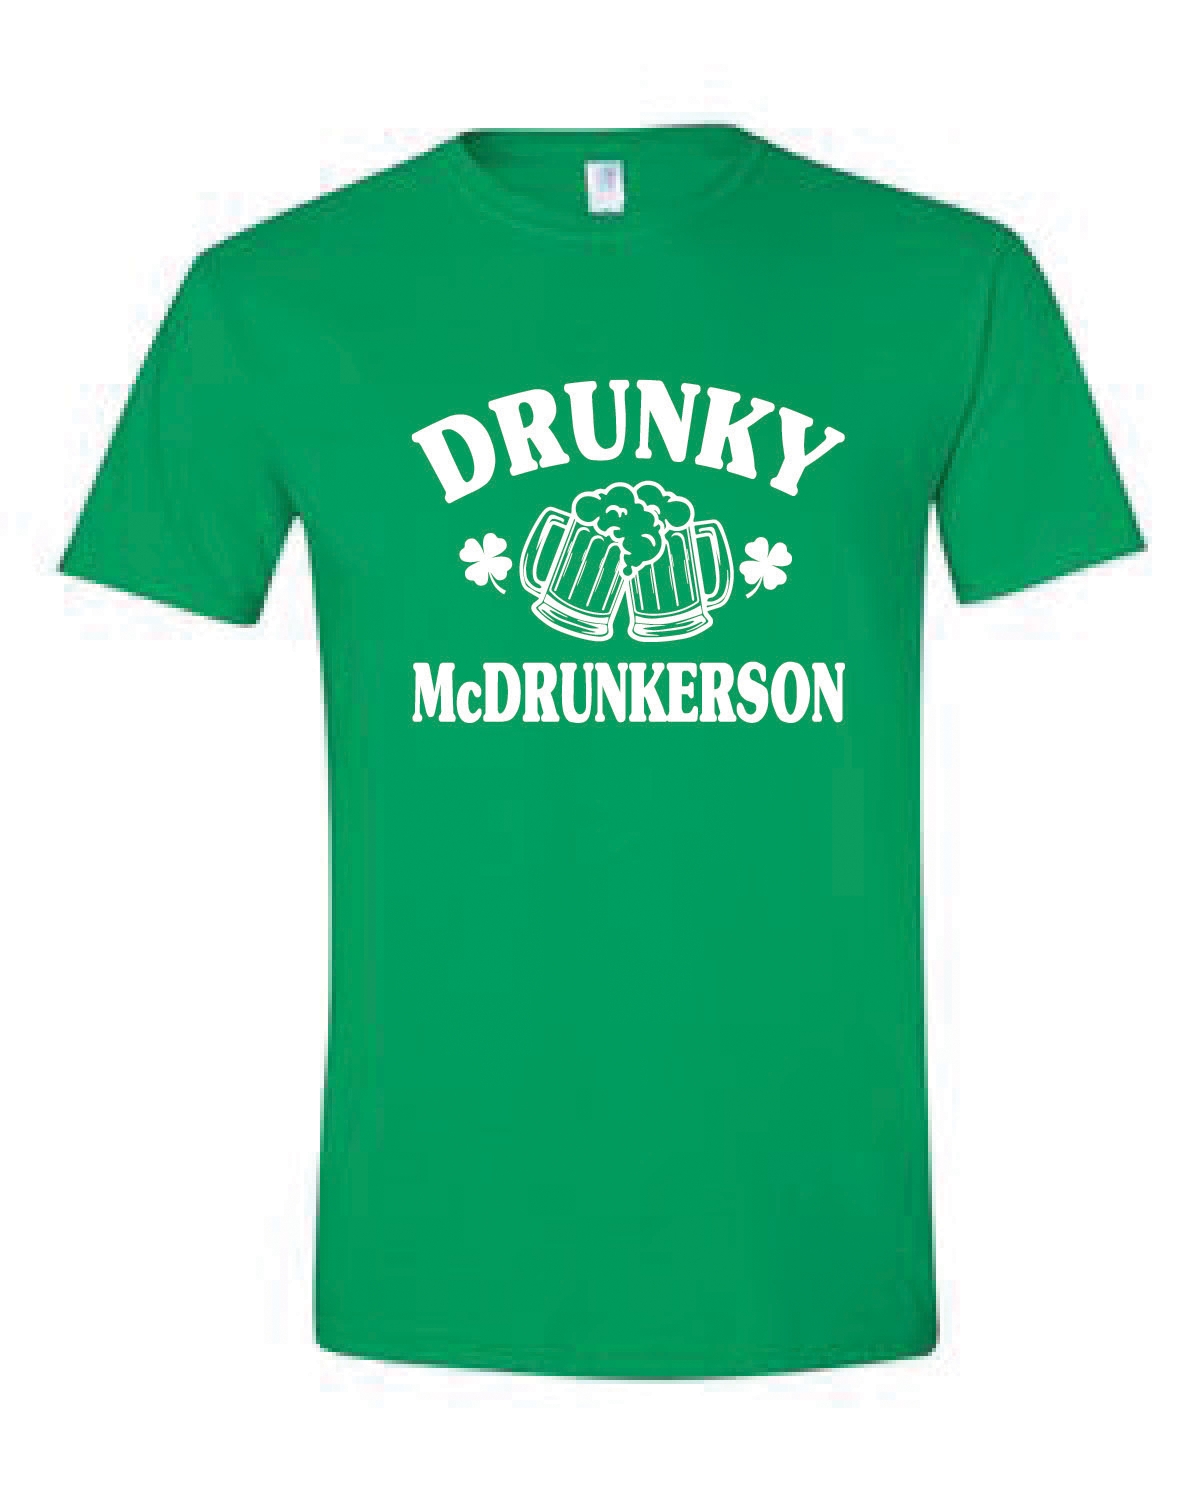 Short Sleeve Softstyle Tee (McDRUNKERSON)